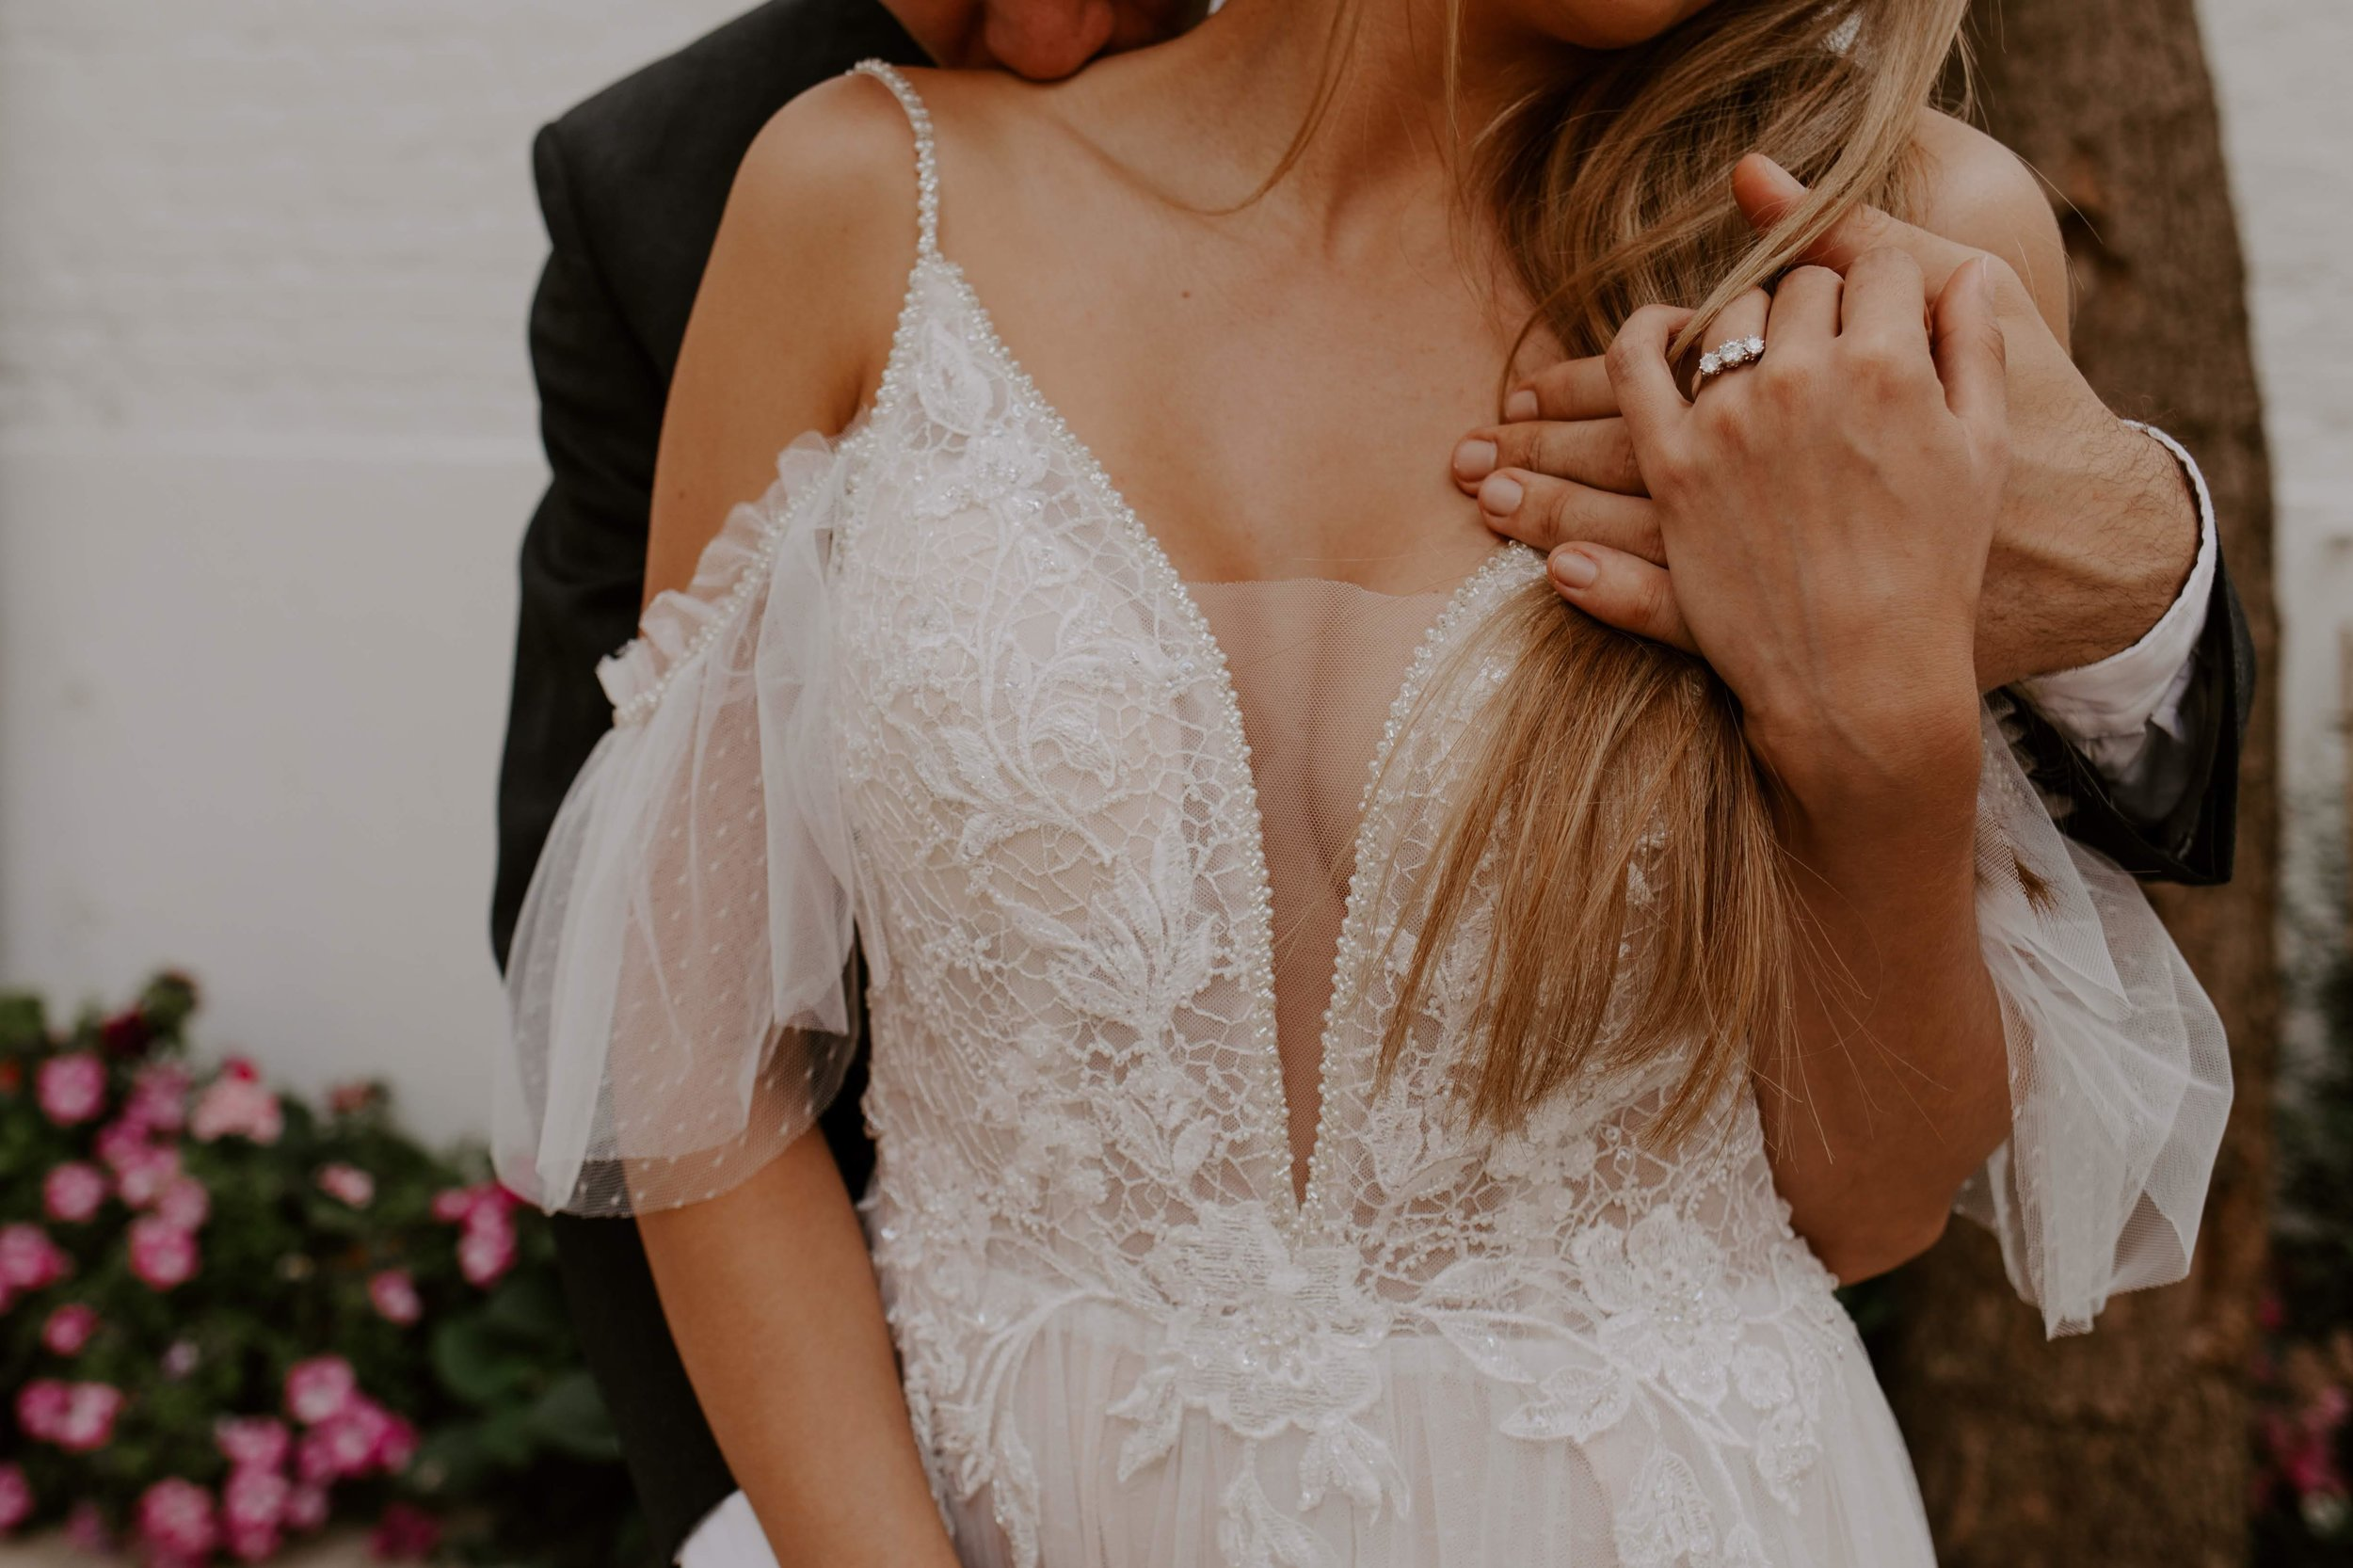 MIss He 2019 - Discover the new 2019 collections of wedding gowns with alluring designs that hug your silhouette like a second skin so you shine on the big day.